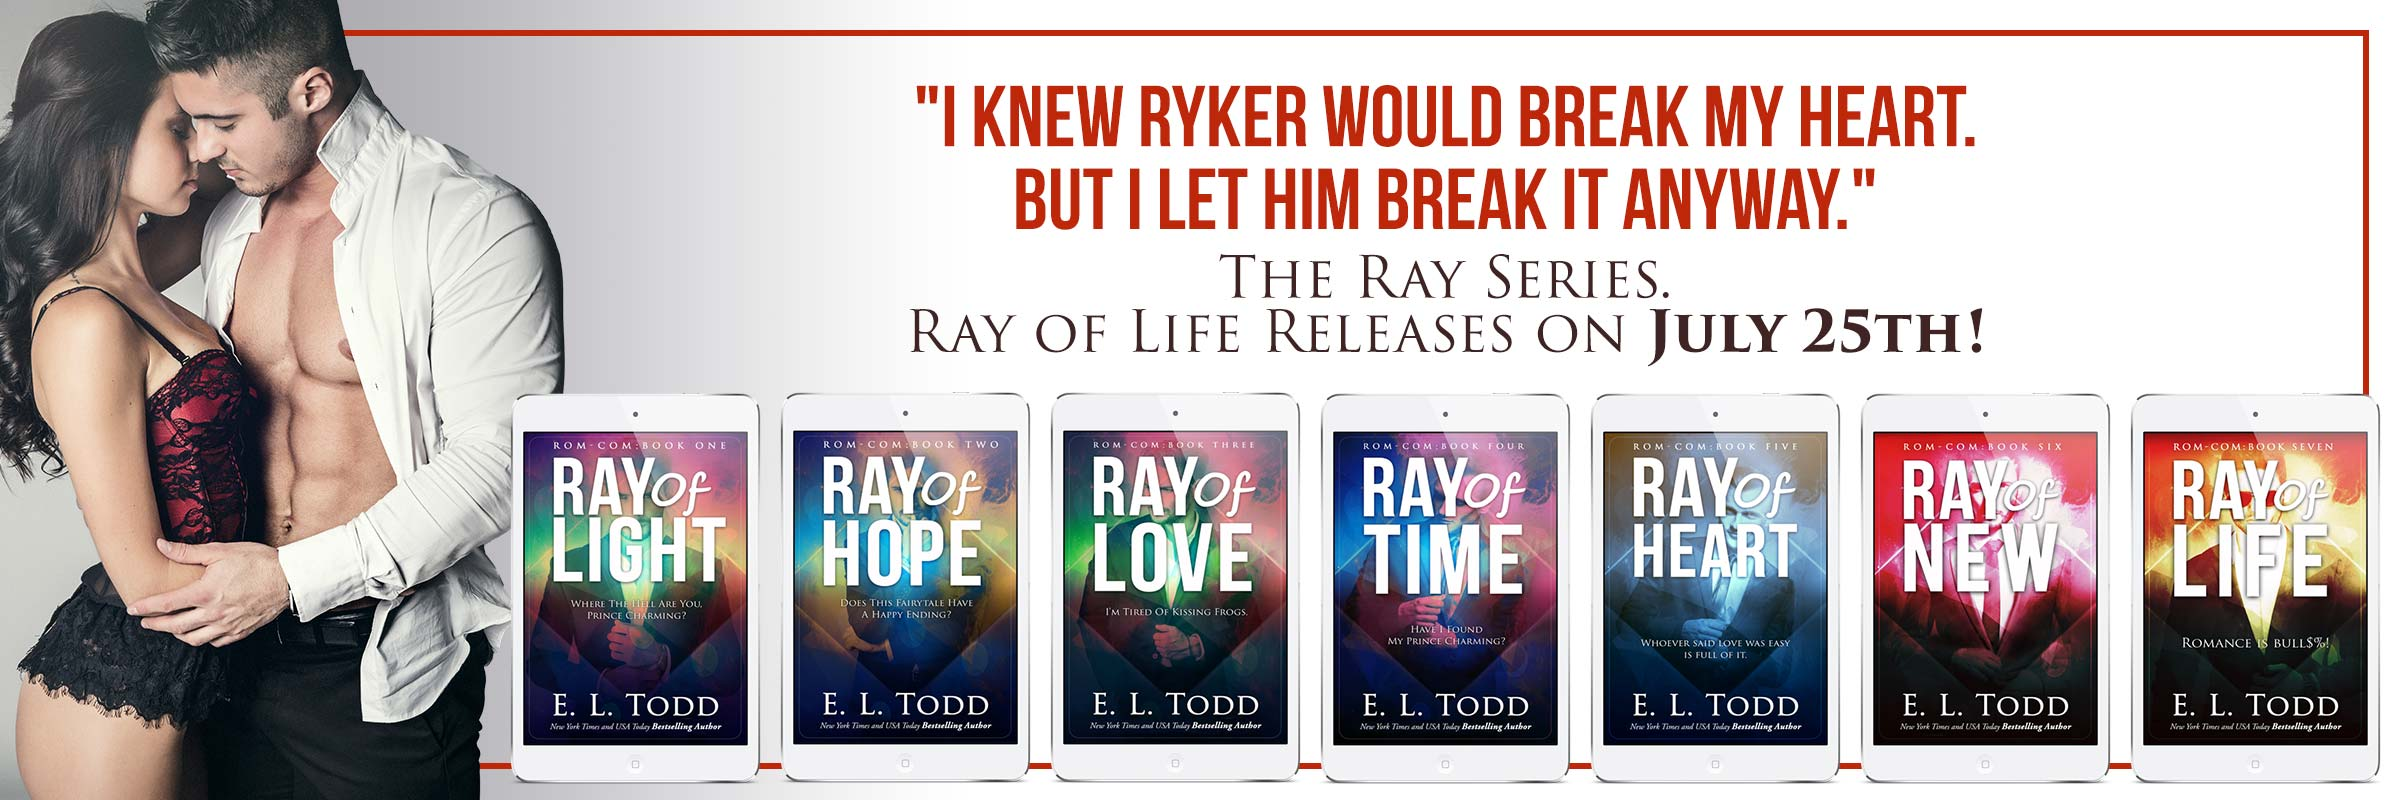 Ray Series by E. L. Todd